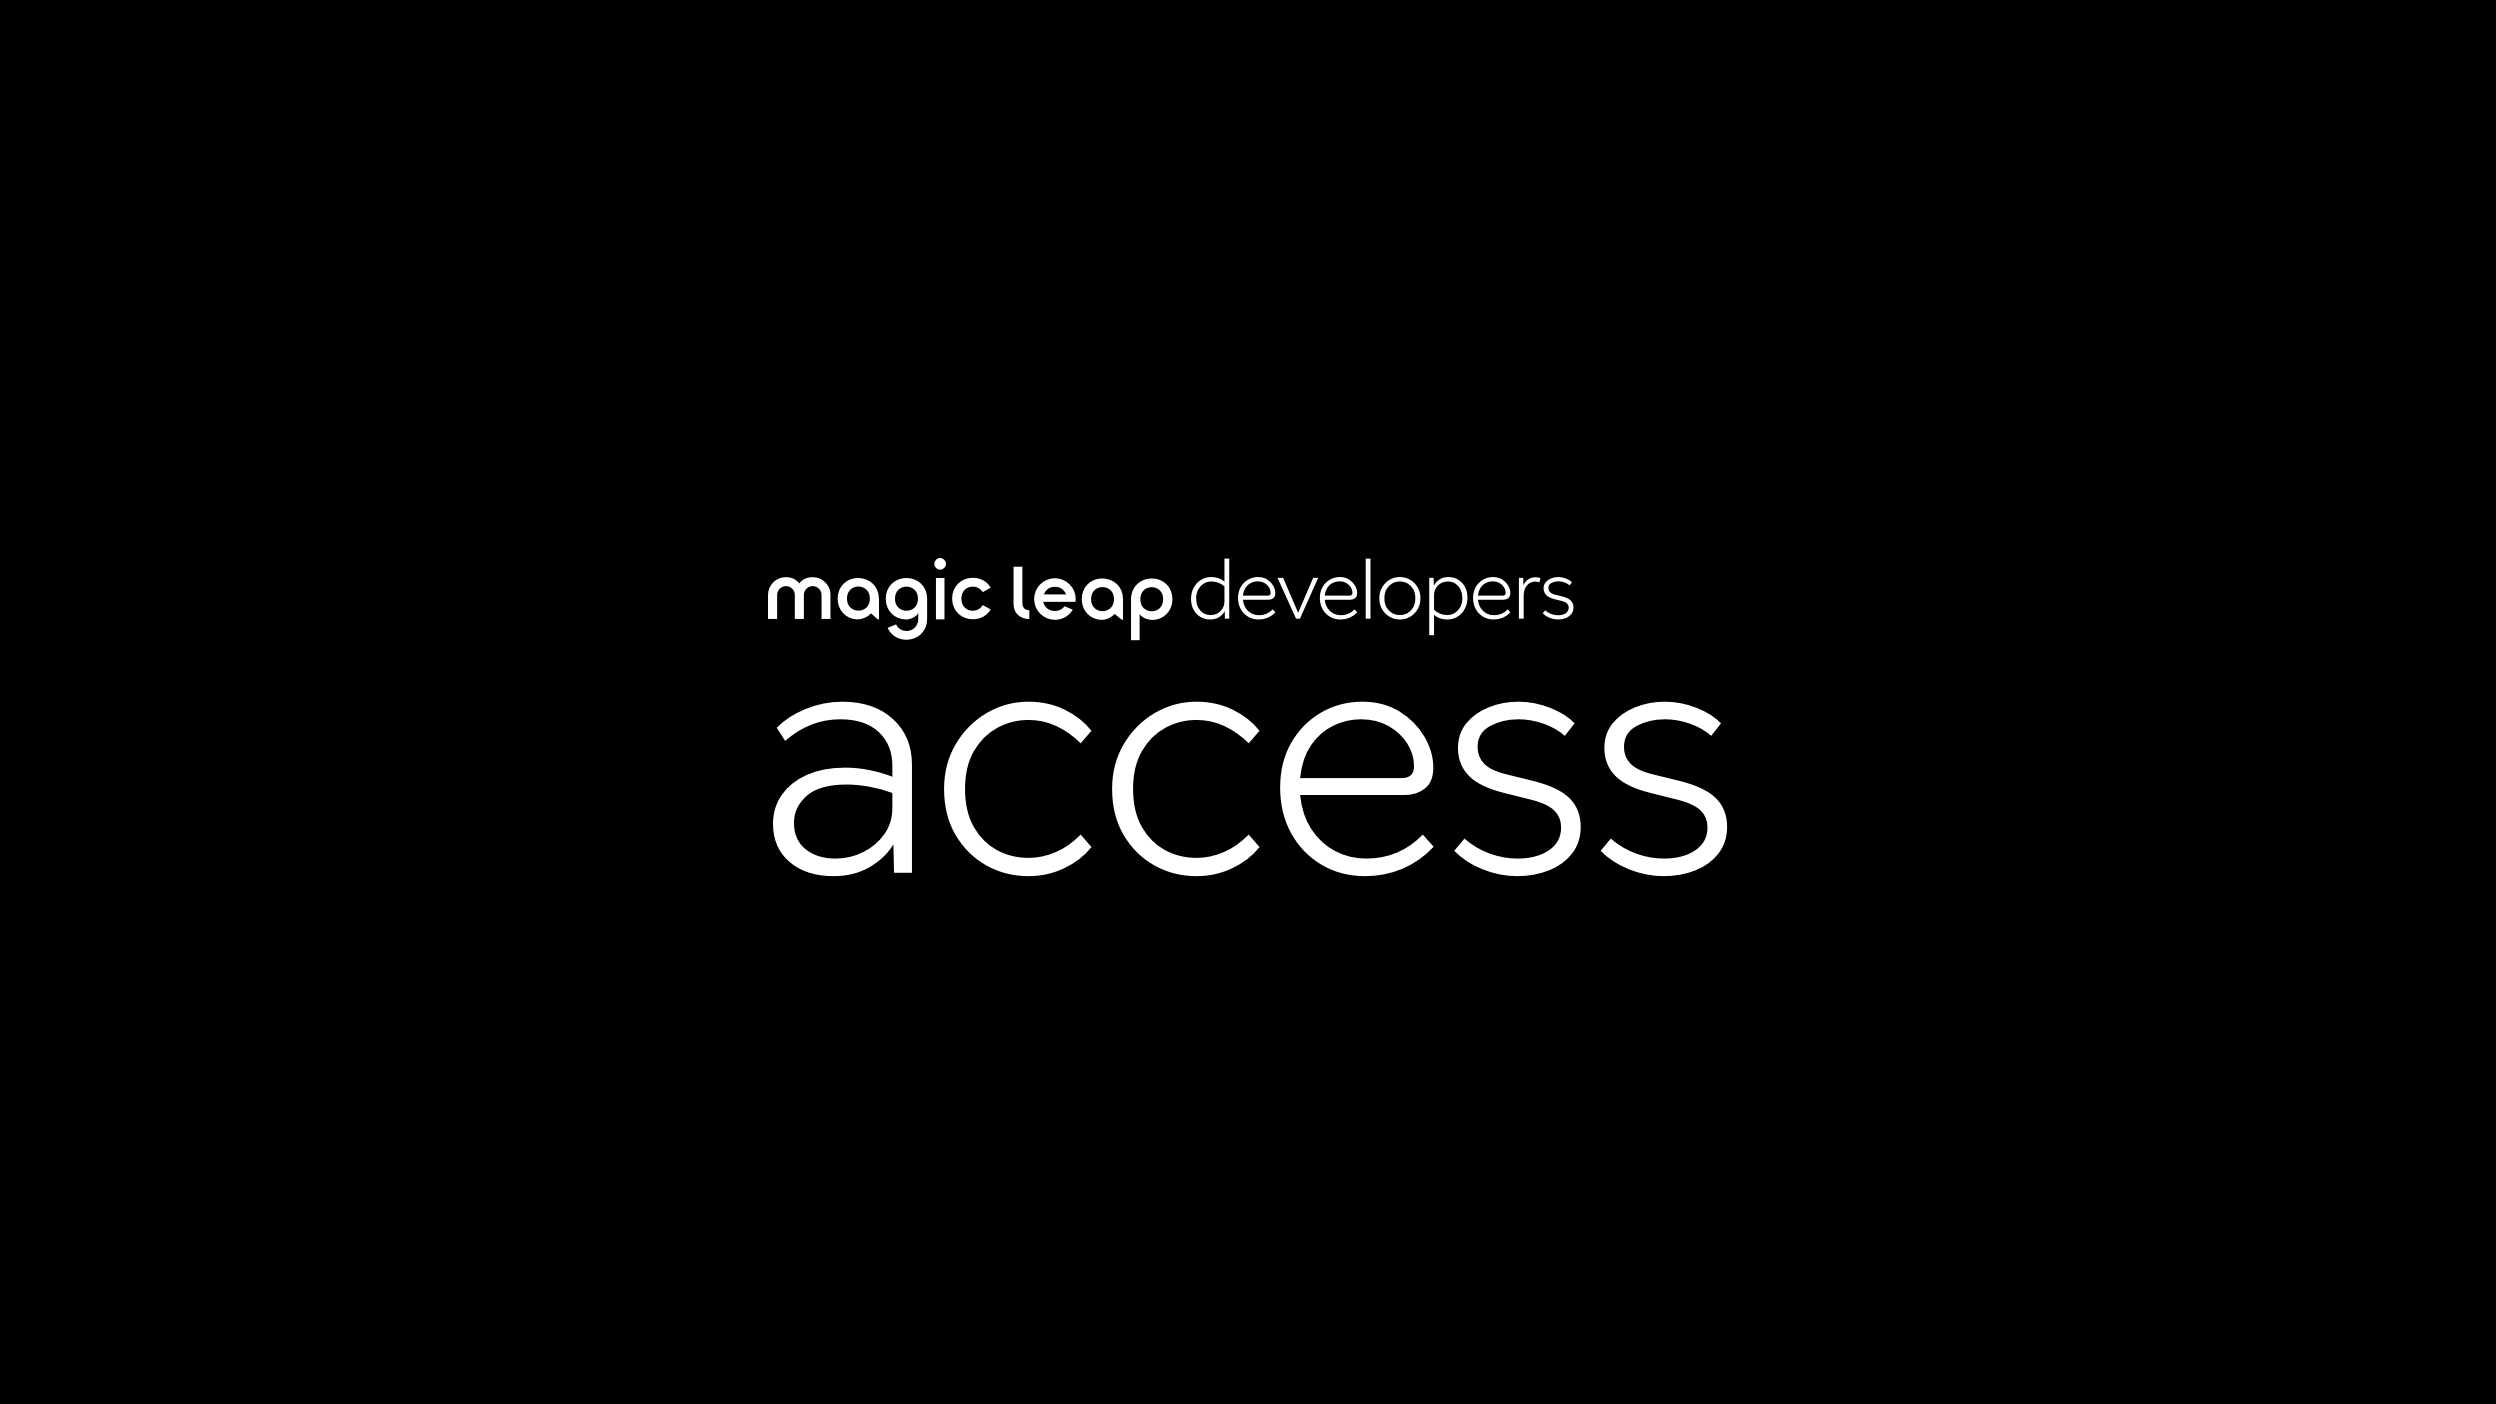 Magic Leap Developers Access